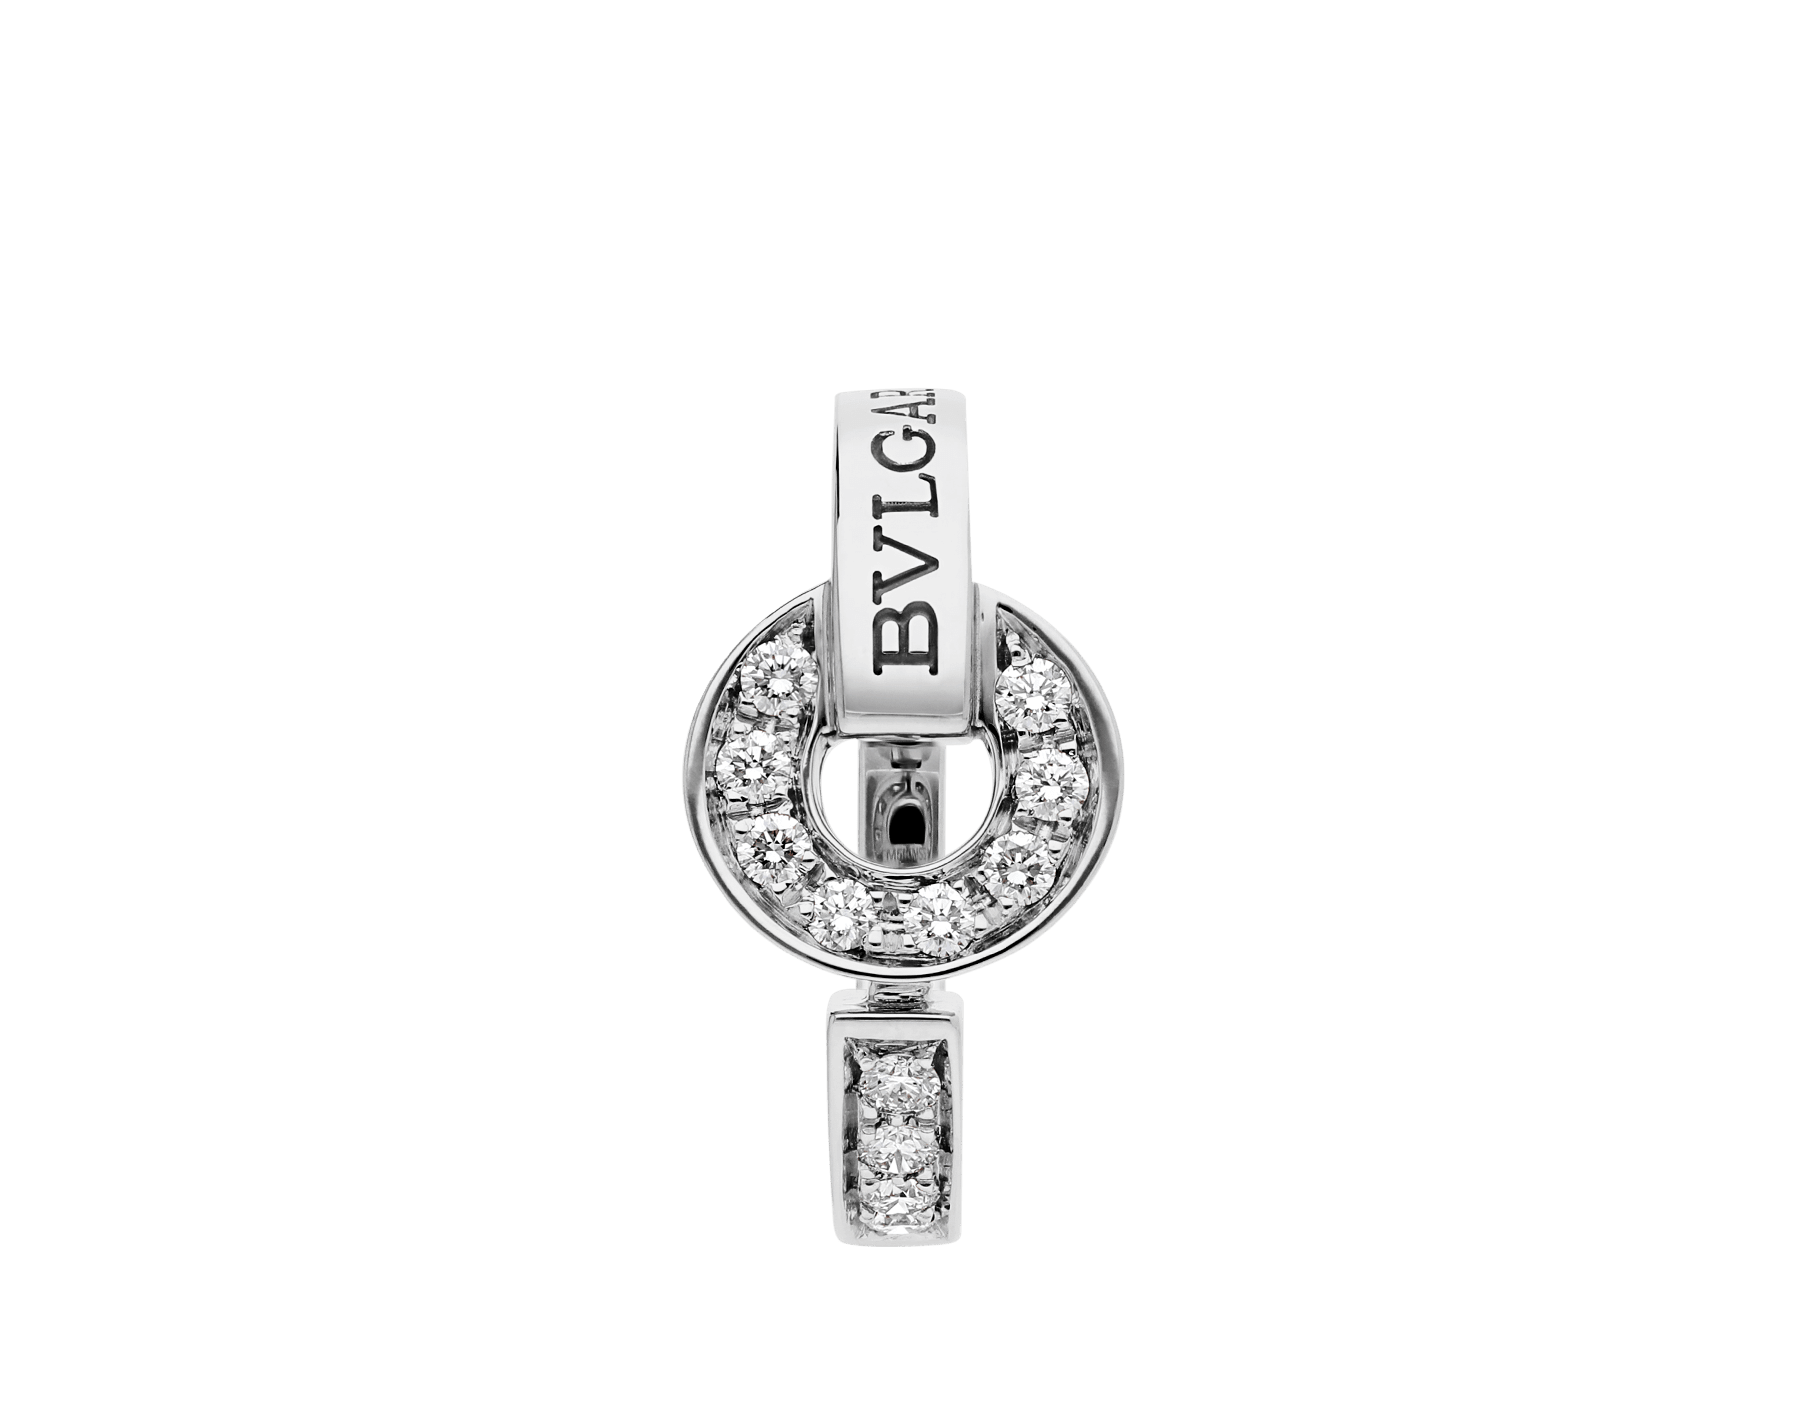 BVLGARI BVLGARI 18 kt white gold ring set with pavé diamonds AN854619 image 2